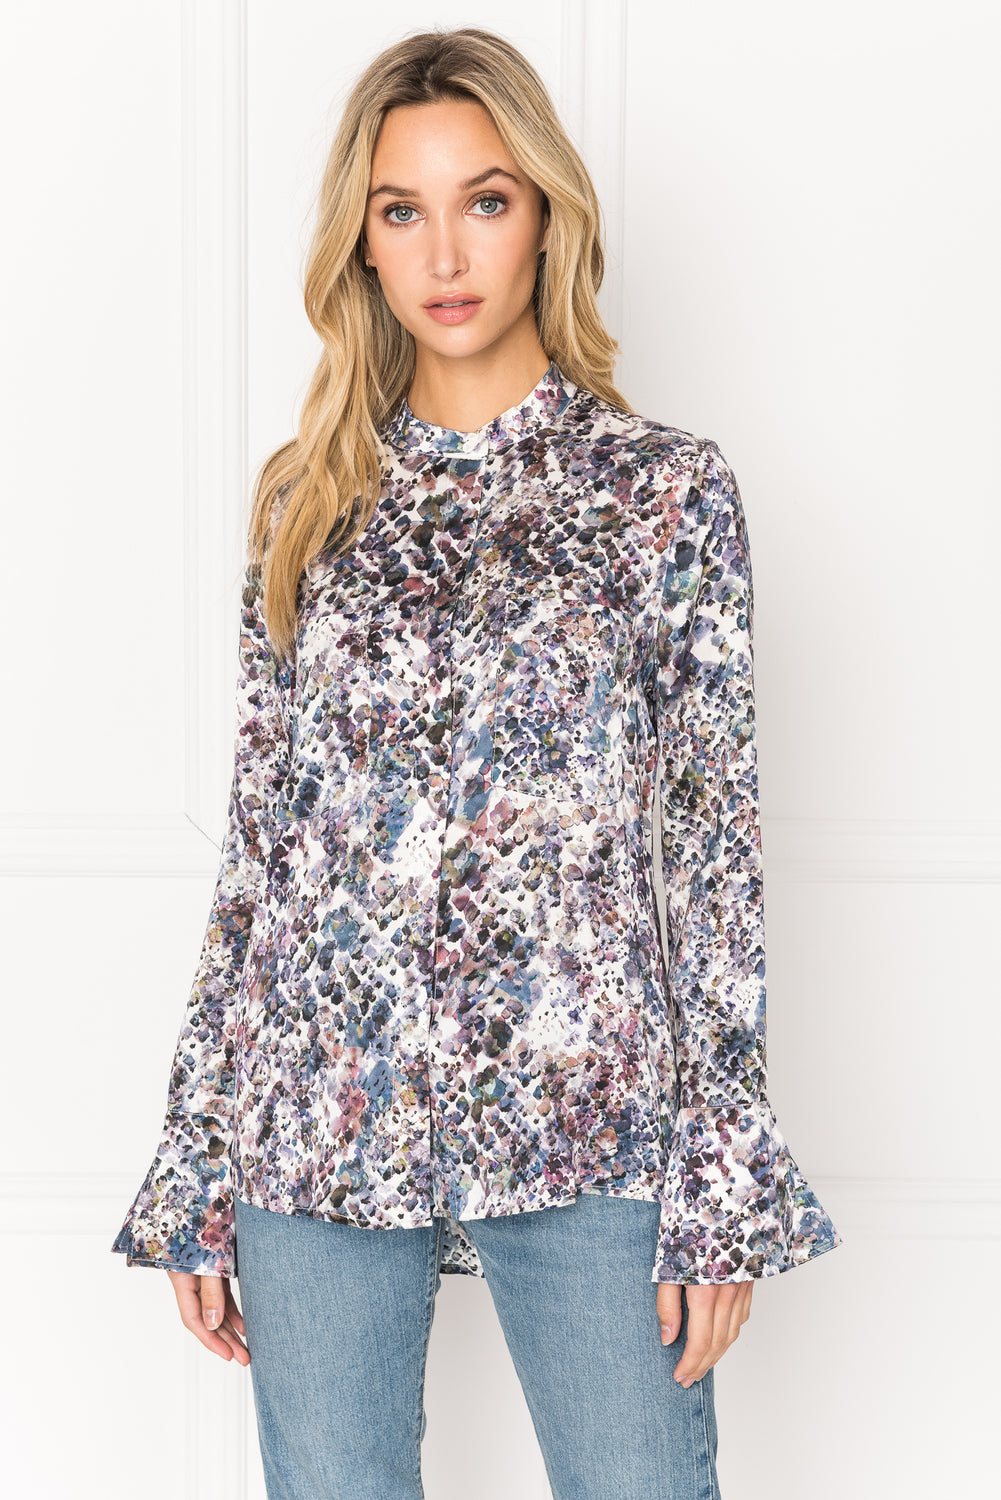 ORLINA Abstract Snake Print Bell Cuffed Button Down Blouse